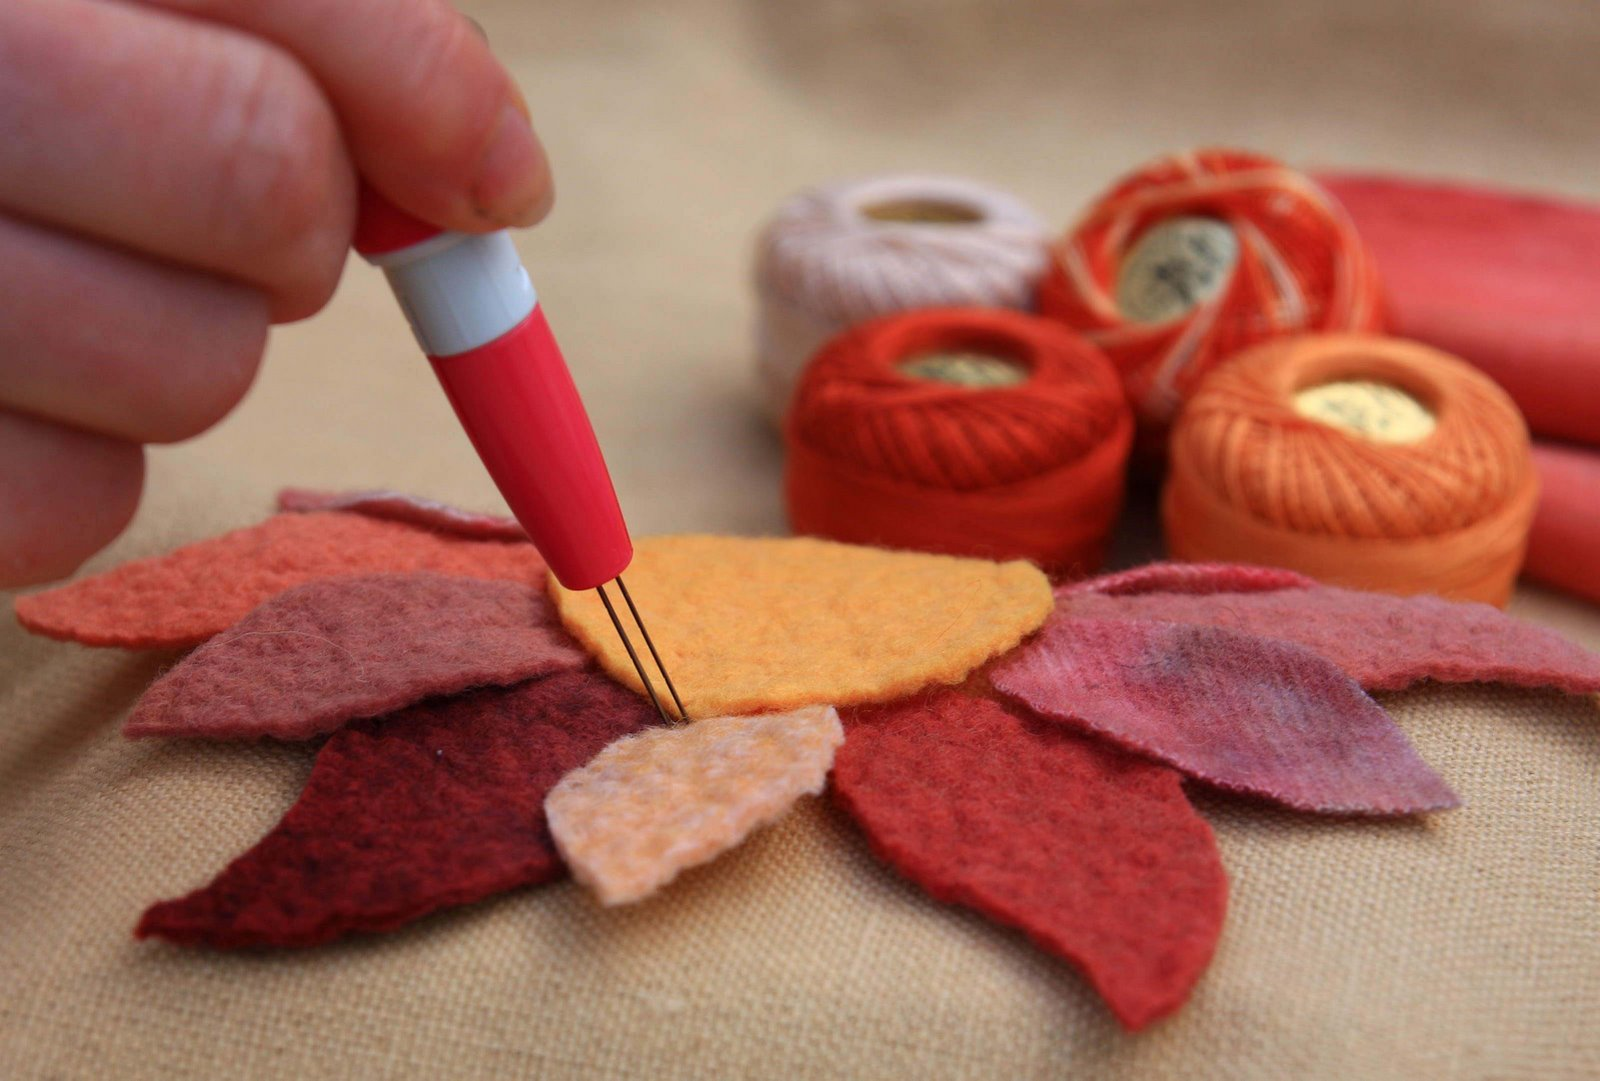 Needle Felting Project with Perle Cotton